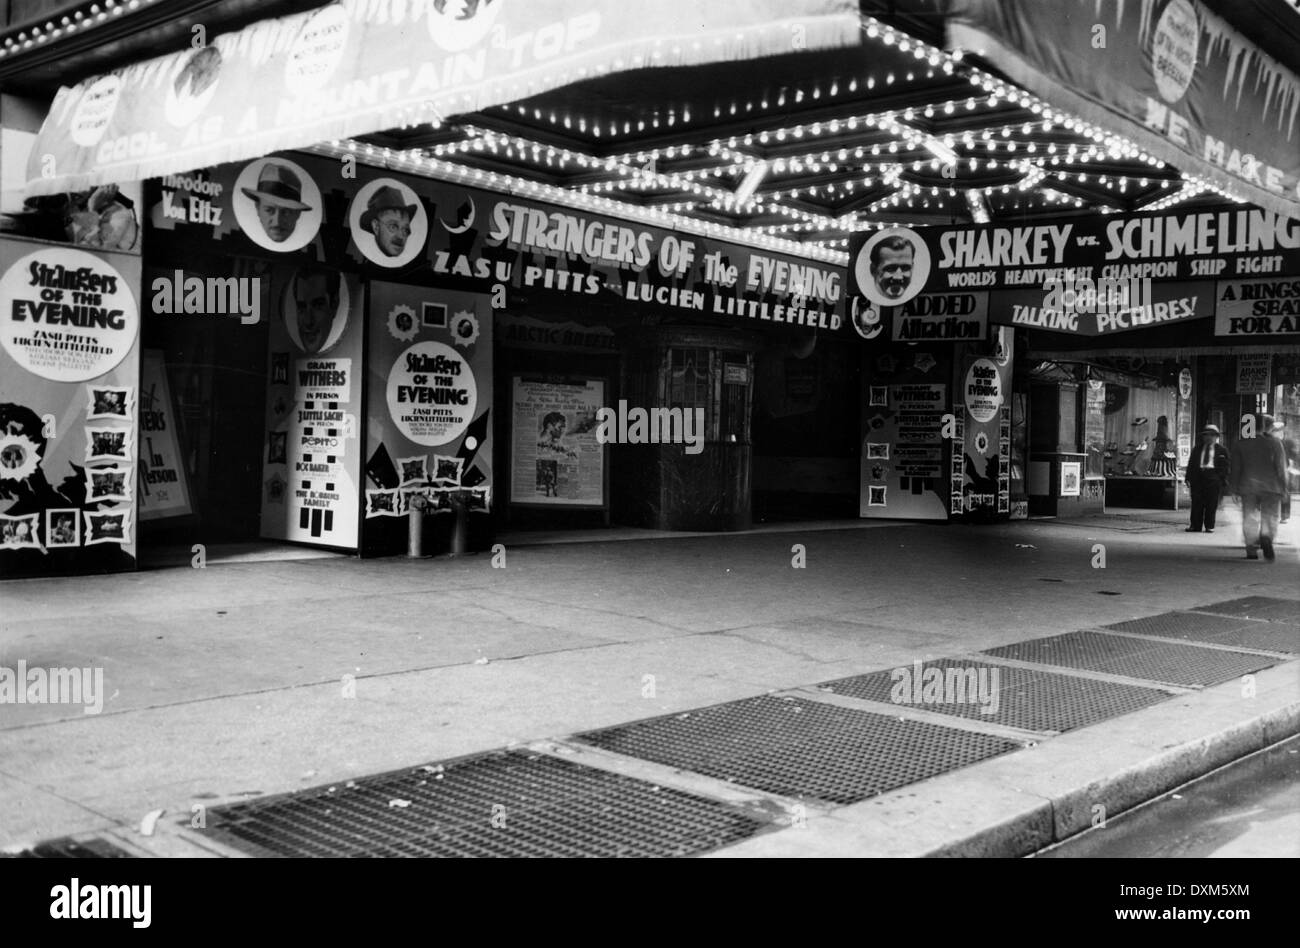 UNIDENTIFIED CINEMA THOUGHT TO BE IN NEW YORK STATE USA SHOW - Stock Image